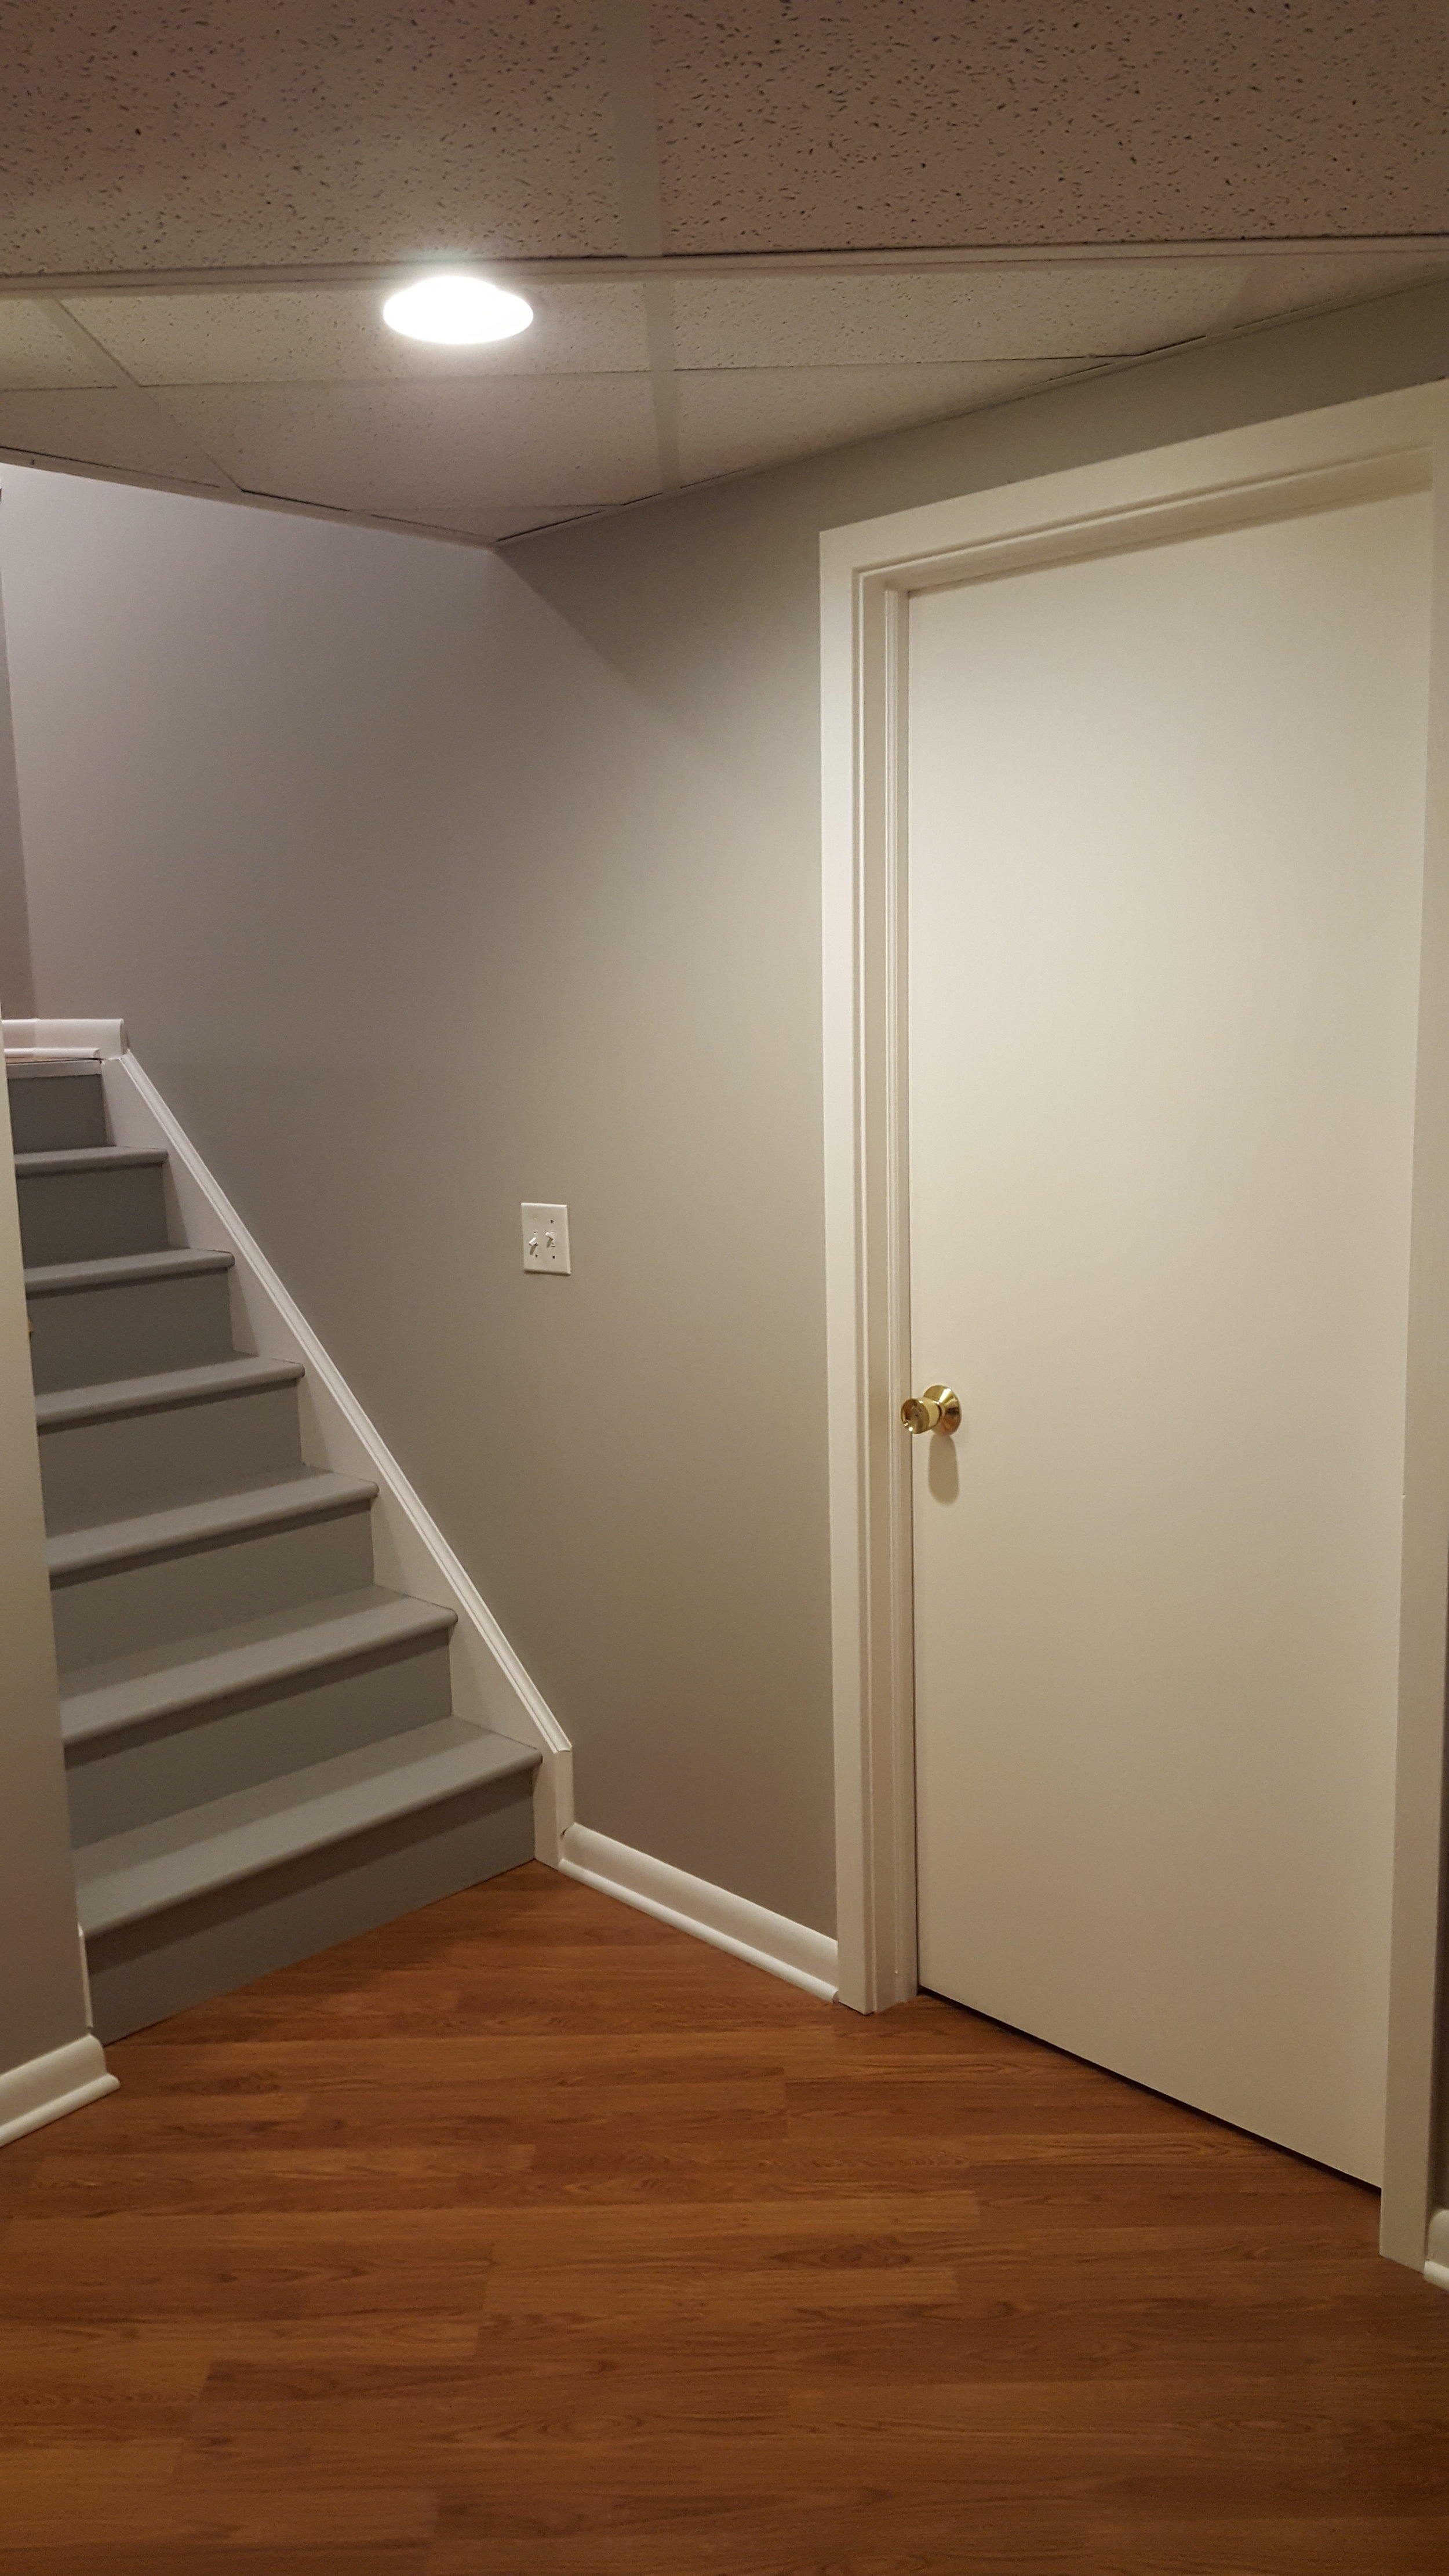 """"""" Great people, very communicative. Competitive prices and great service! Josh's attention to detail on the painting work itself is the best I've seen. I plan to hire Stamp Paints again. """"   -Kate M."""